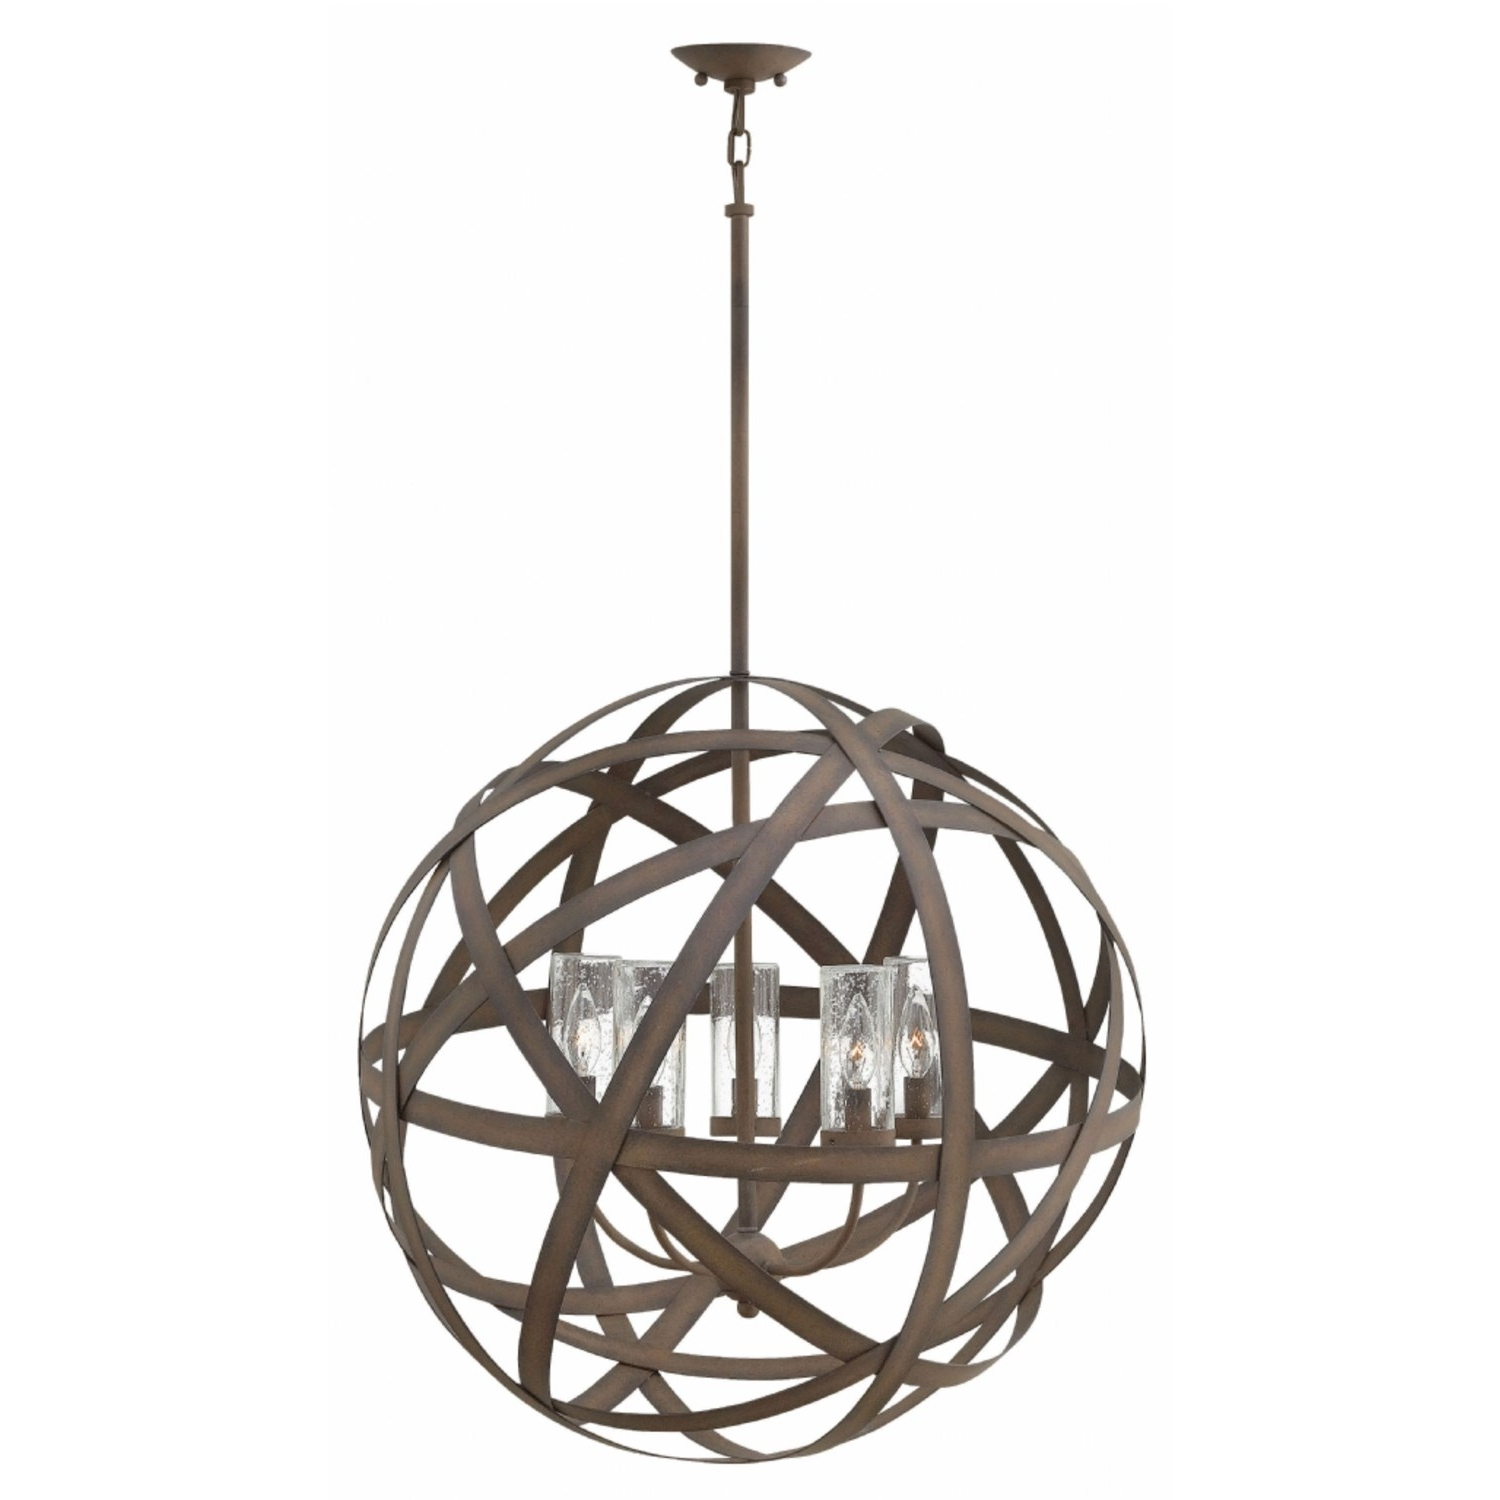 Hinkley Outdoor Ceiling Lights Pertaining To Most Recent Hinkley 29705vi Carson 5 Light Outdoor Pendant In Vintage Iron (View 8 of 20)